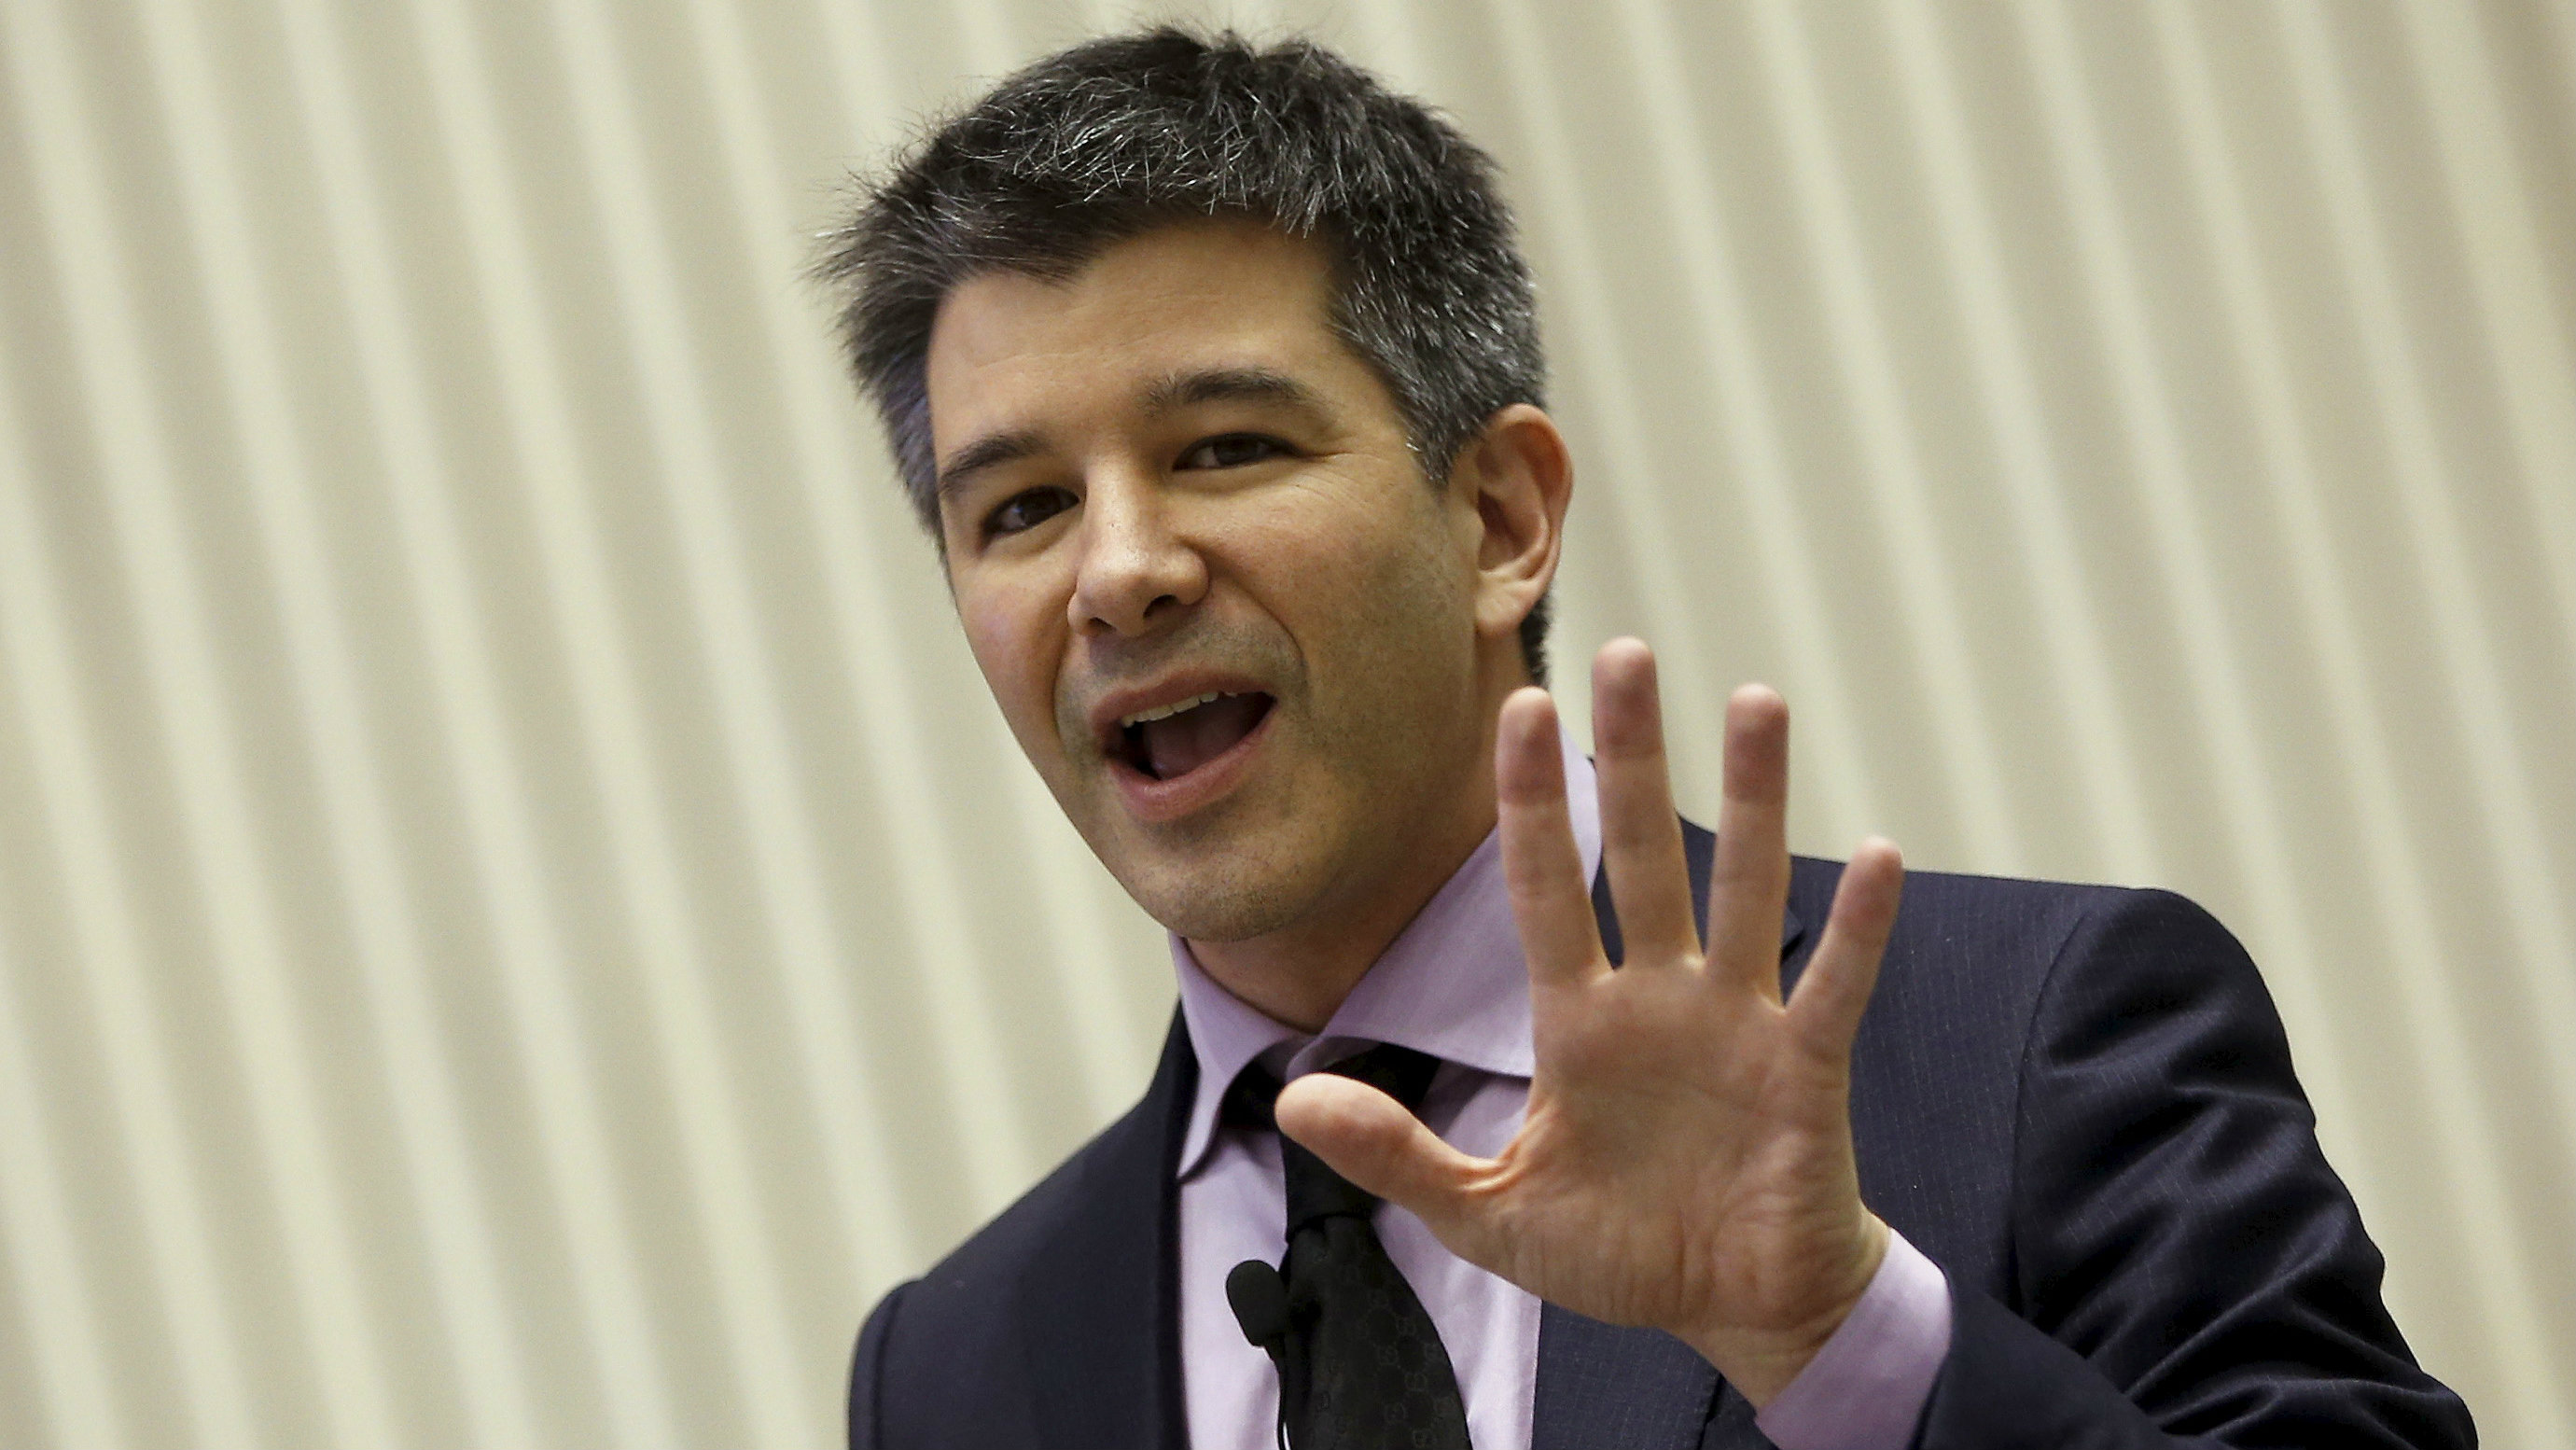 Uber CEO Travis Kalanick gestures as he addresses a gathering during a conference of start-up businesses in New Delhi, India, January 16, 2016.